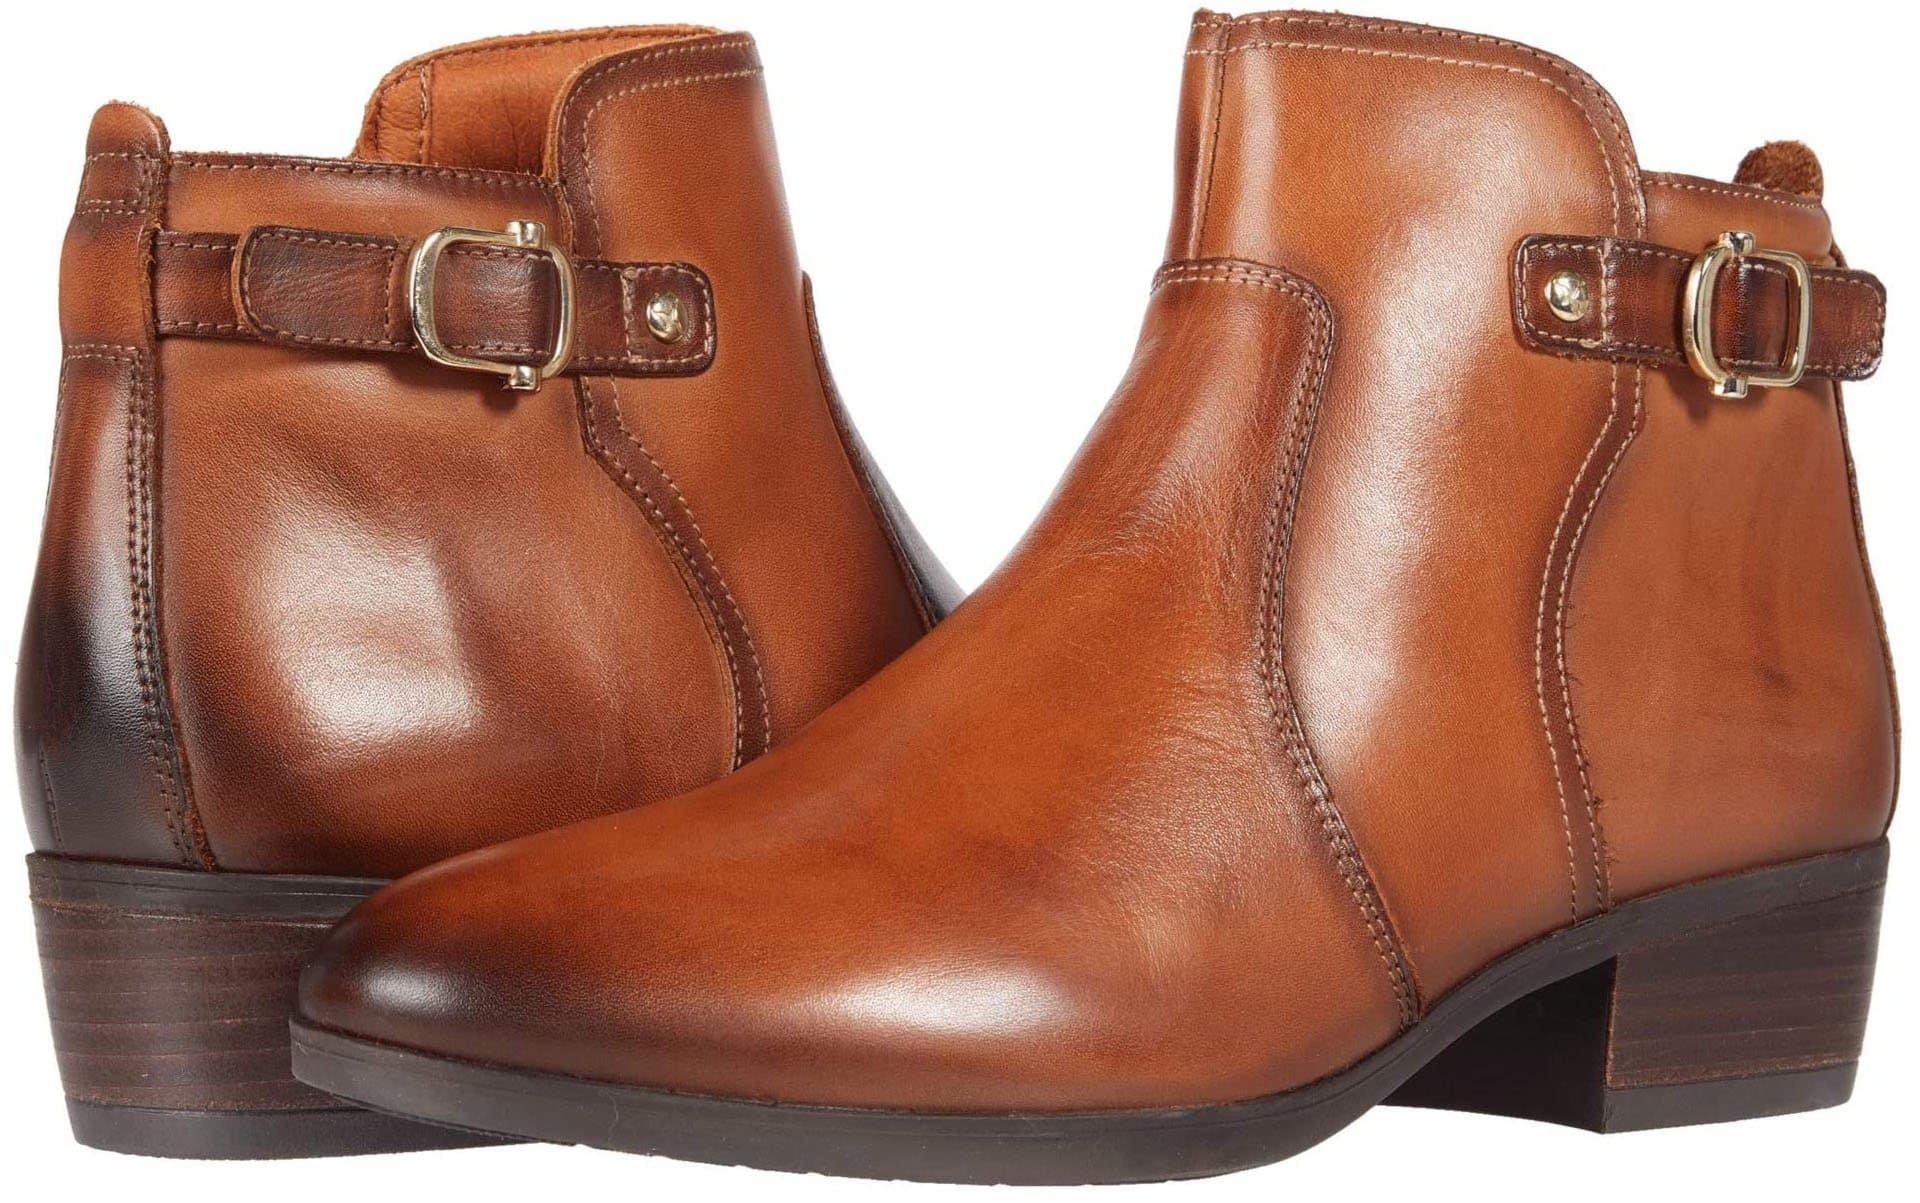 Keep your ankle jeans near to show off these fabulous booties in a luxe calfskin leather upper